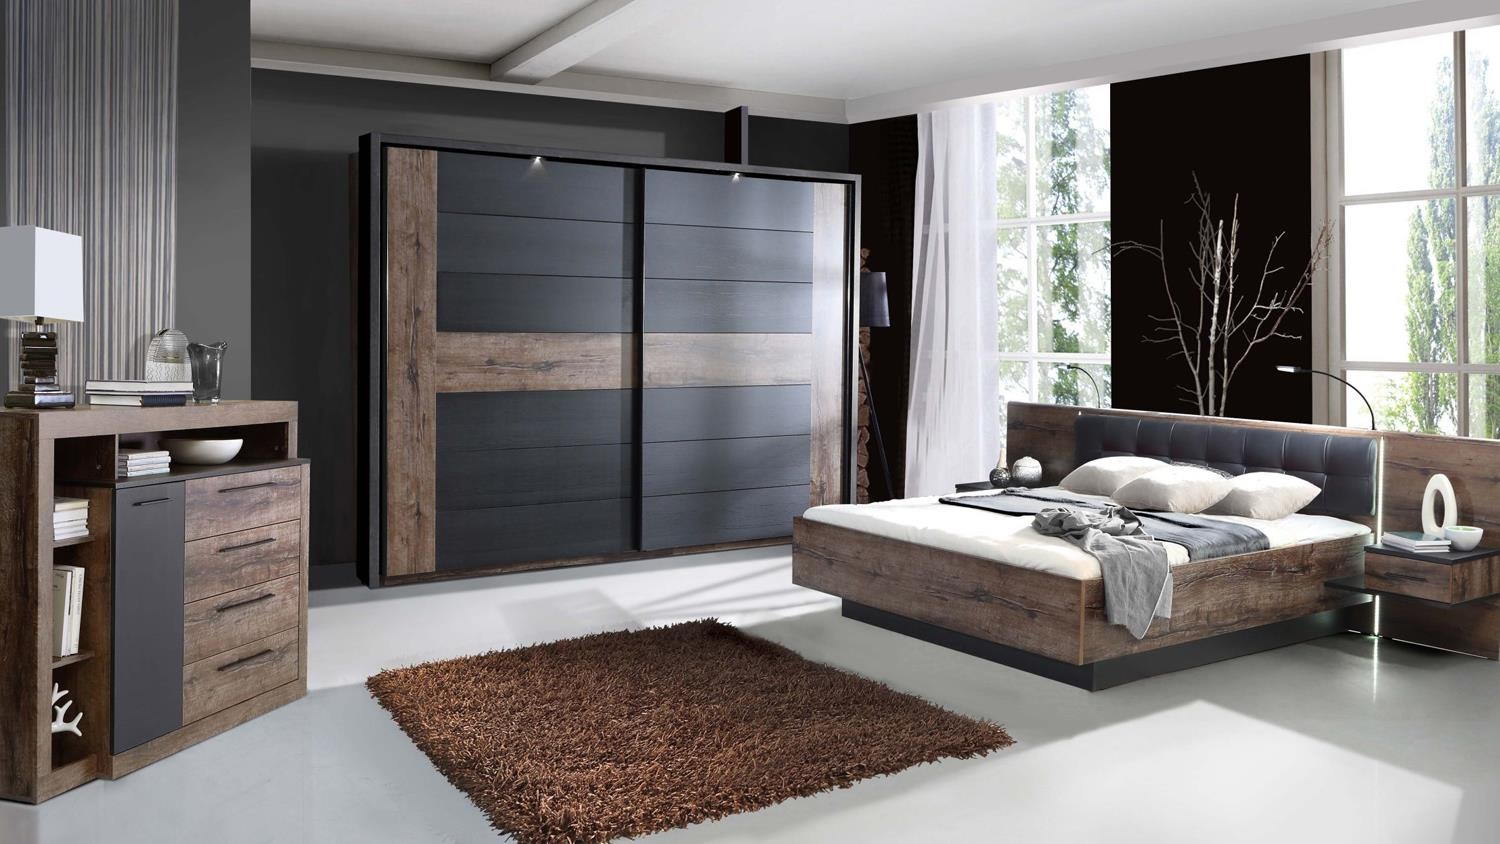 schlafzimmer bellevue mit schwebet renschrank inklusive. Black Bedroom Furniture Sets. Home Design Ideas